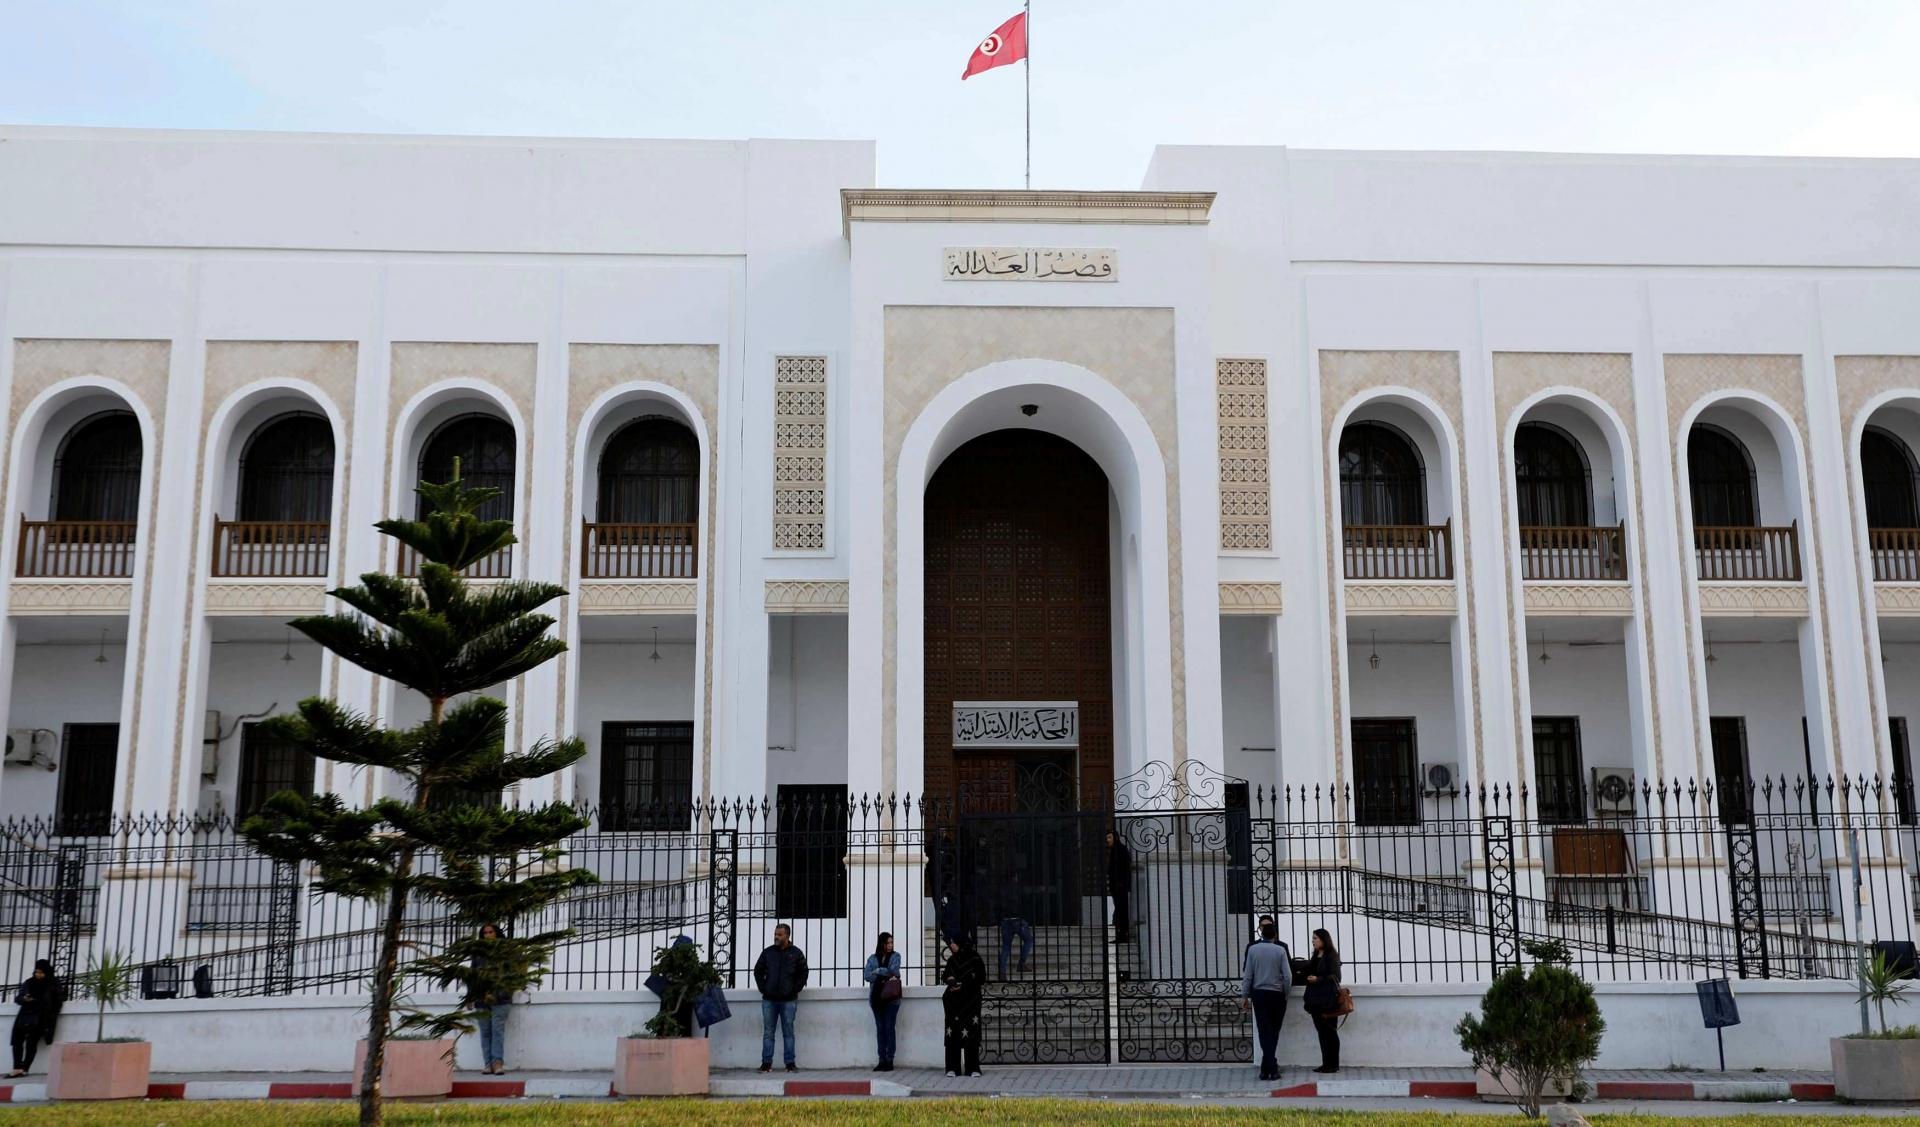 Palace of Justice, Tunis (source: Twitter)